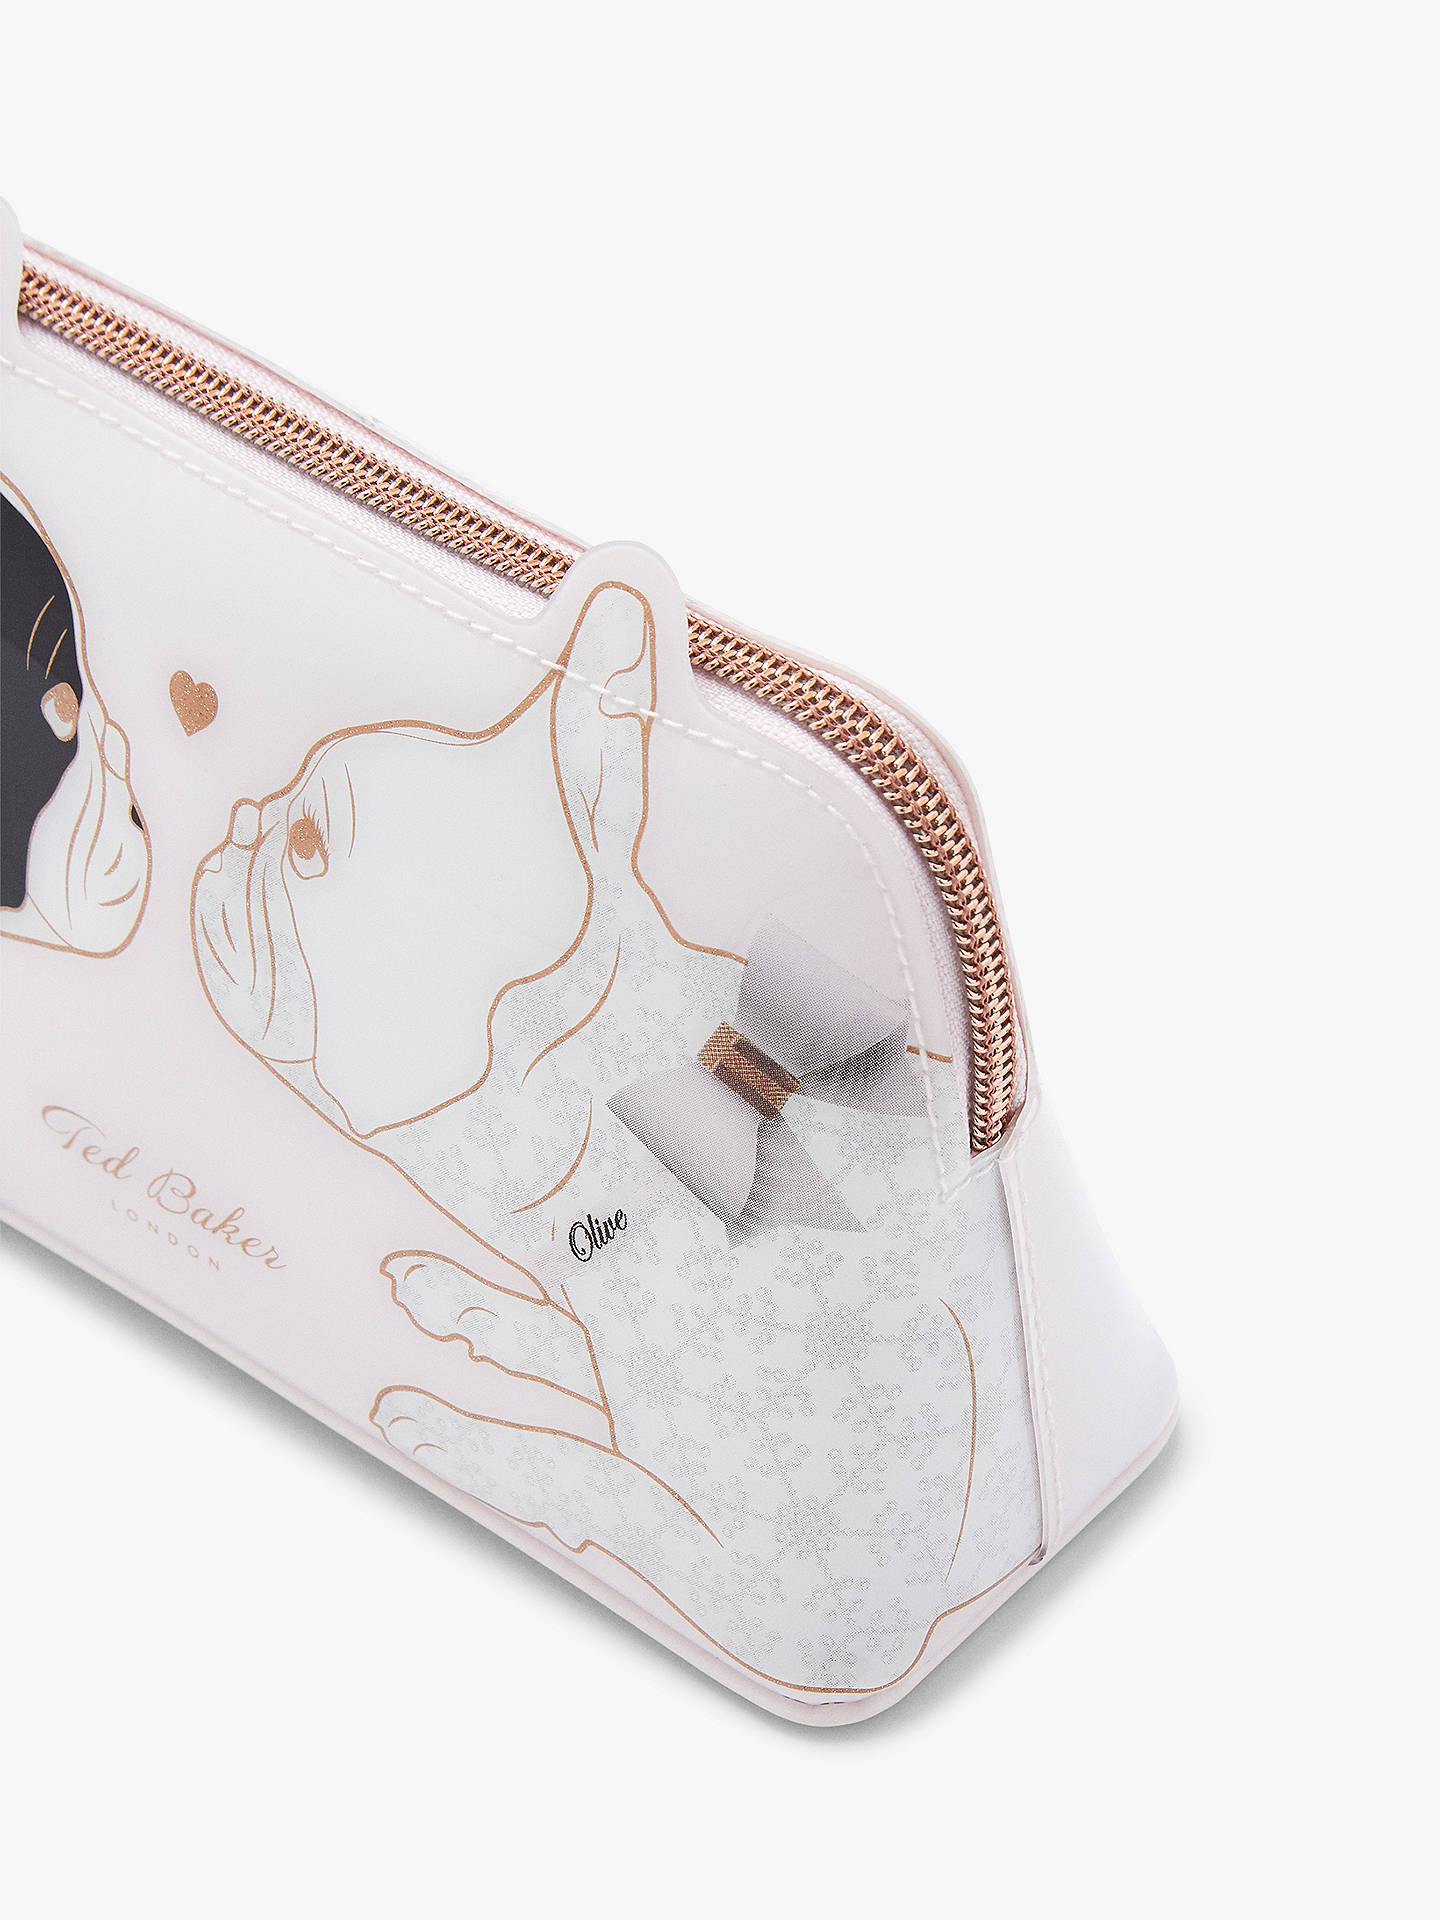 07de809cbbc8 Buy Ted Baker Aria Cotton Dog Bulldog Makeup Bag. Pink Nude Online at  johnlewis.